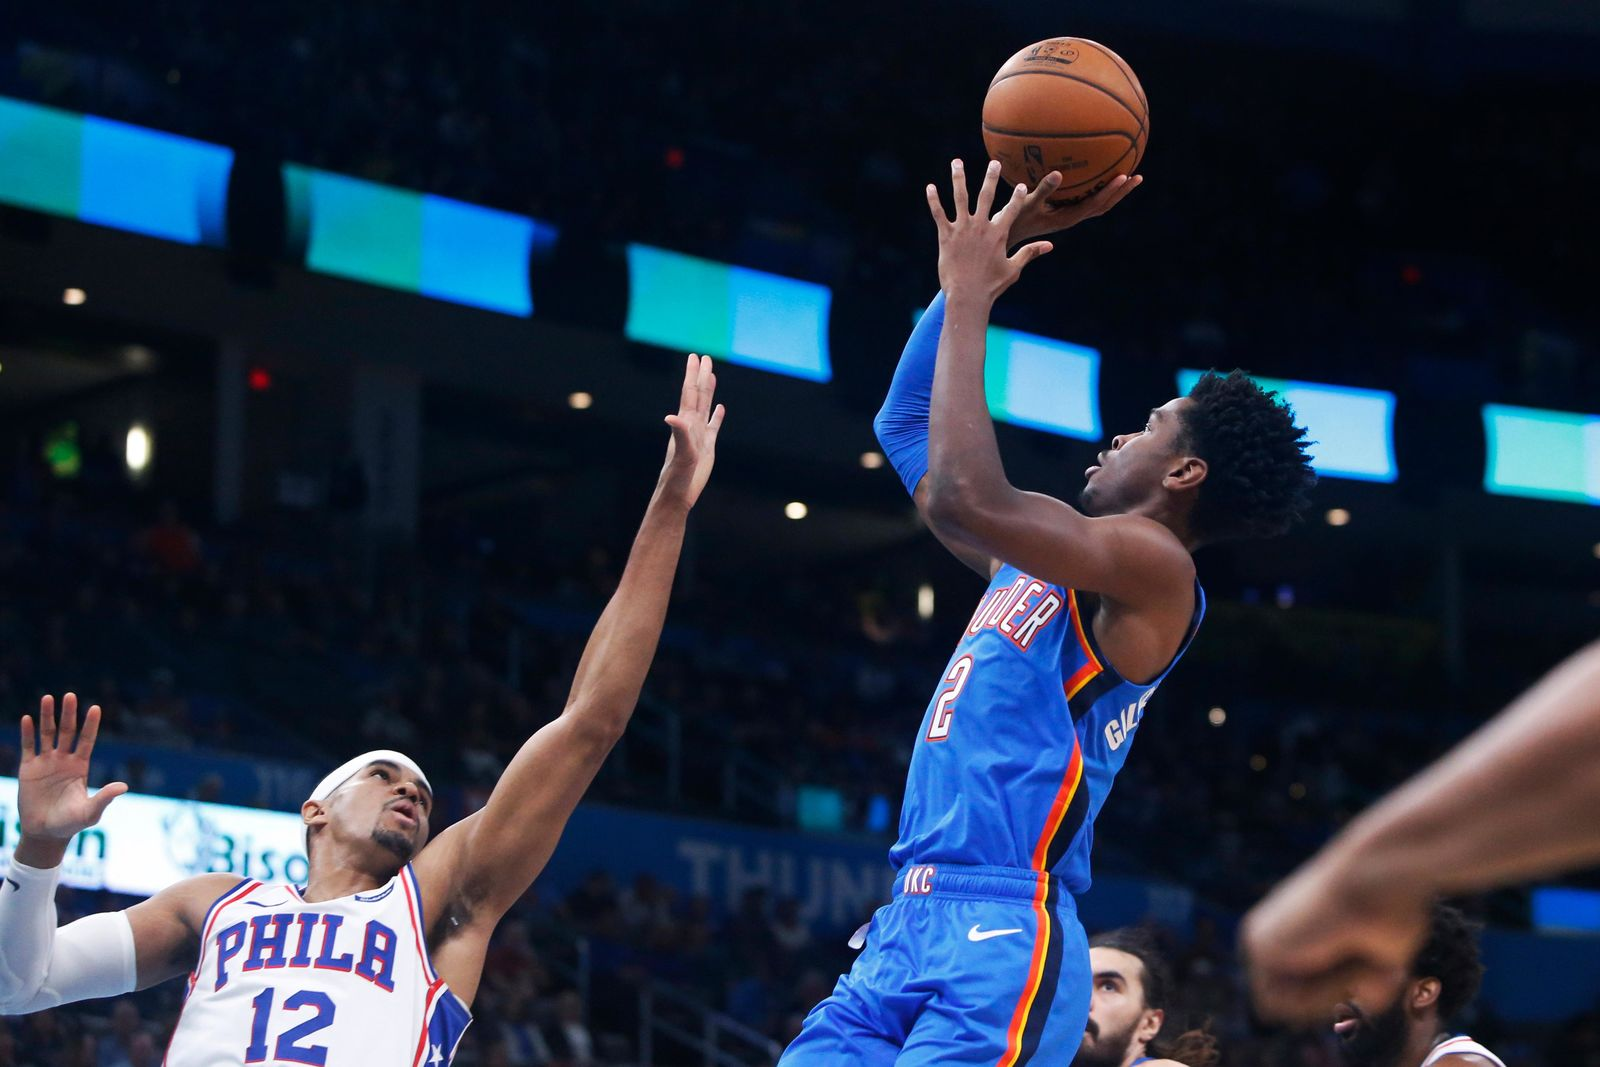 Oklahoma City Thunder guard Shai Gilgeous-Alexander (2) shoots over Philadelphia 76ers forward Tobias Harris (12) during the first half of an NBA basketball game Friday, Nov. 15, 2019, in Oklahoma City. (AP Photo/Sue Ogrocki)